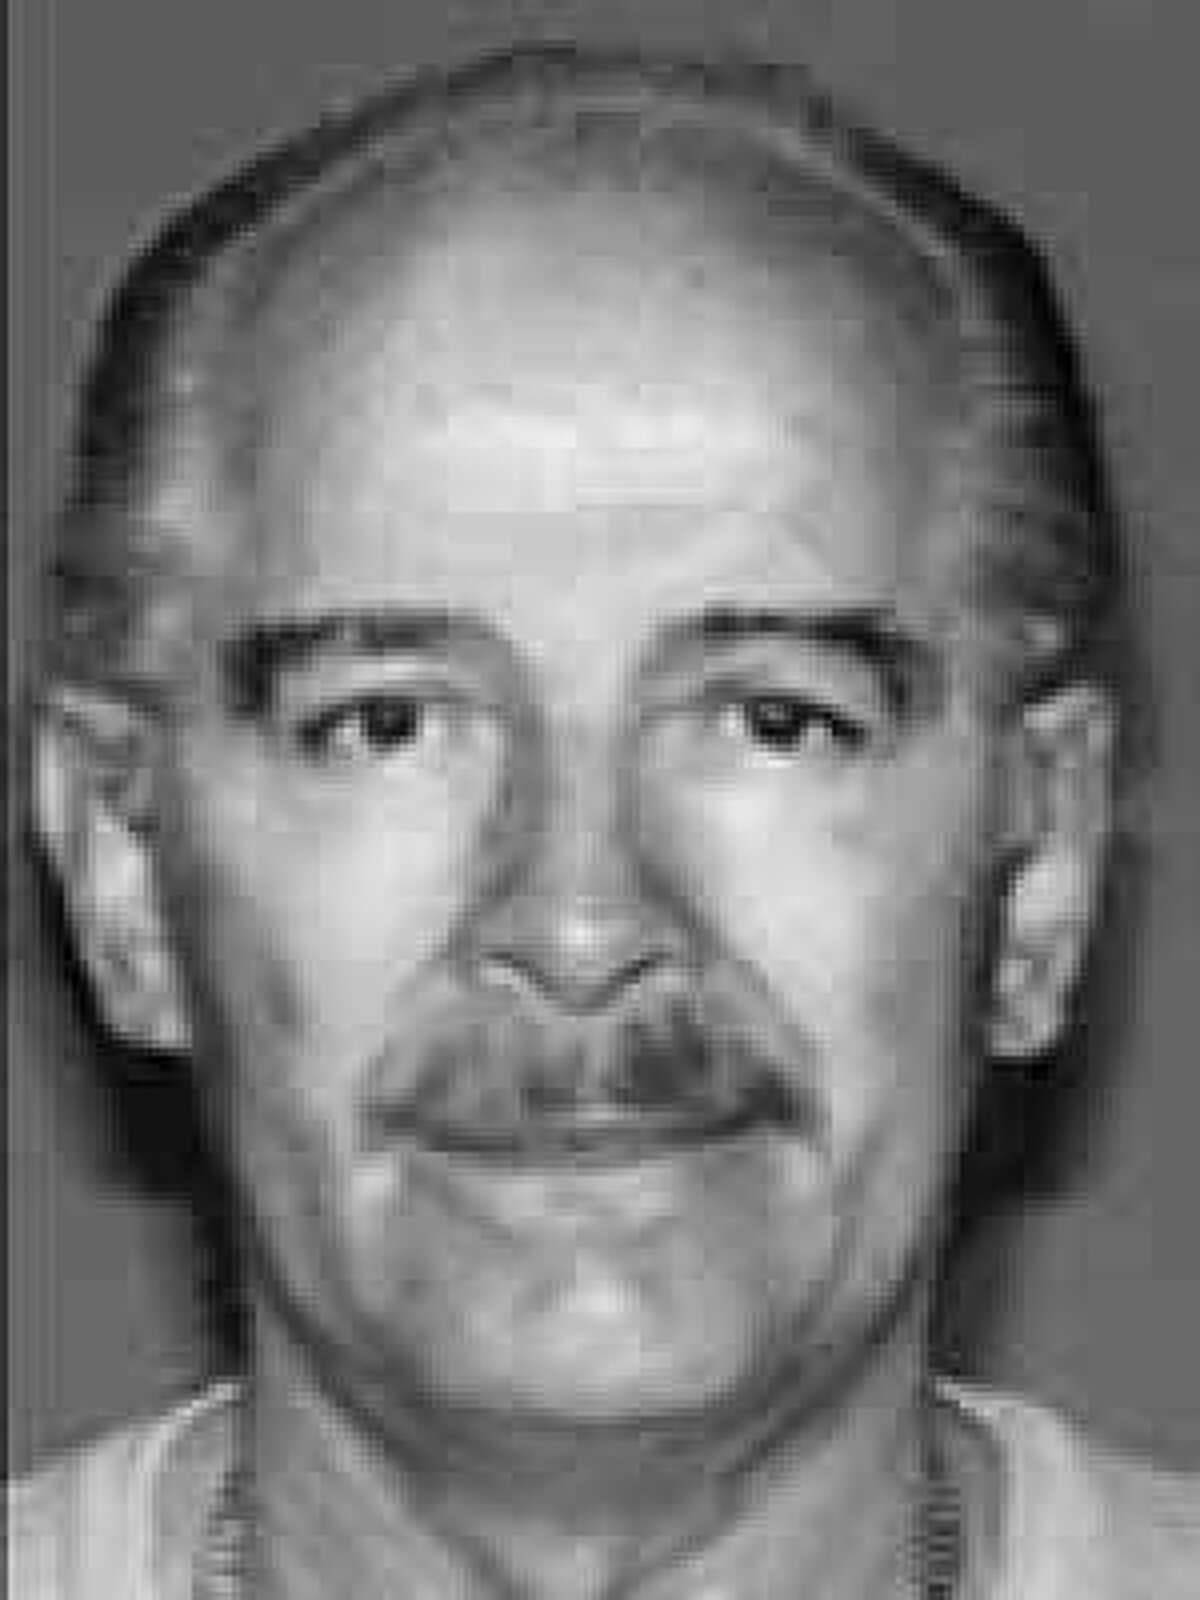 James J. Bulger is being sought for his role in numerous murders and in connection with his leadership of an organized crime group that allegedly controlled extortion, drug deals and other illegal activities in the Boston area.